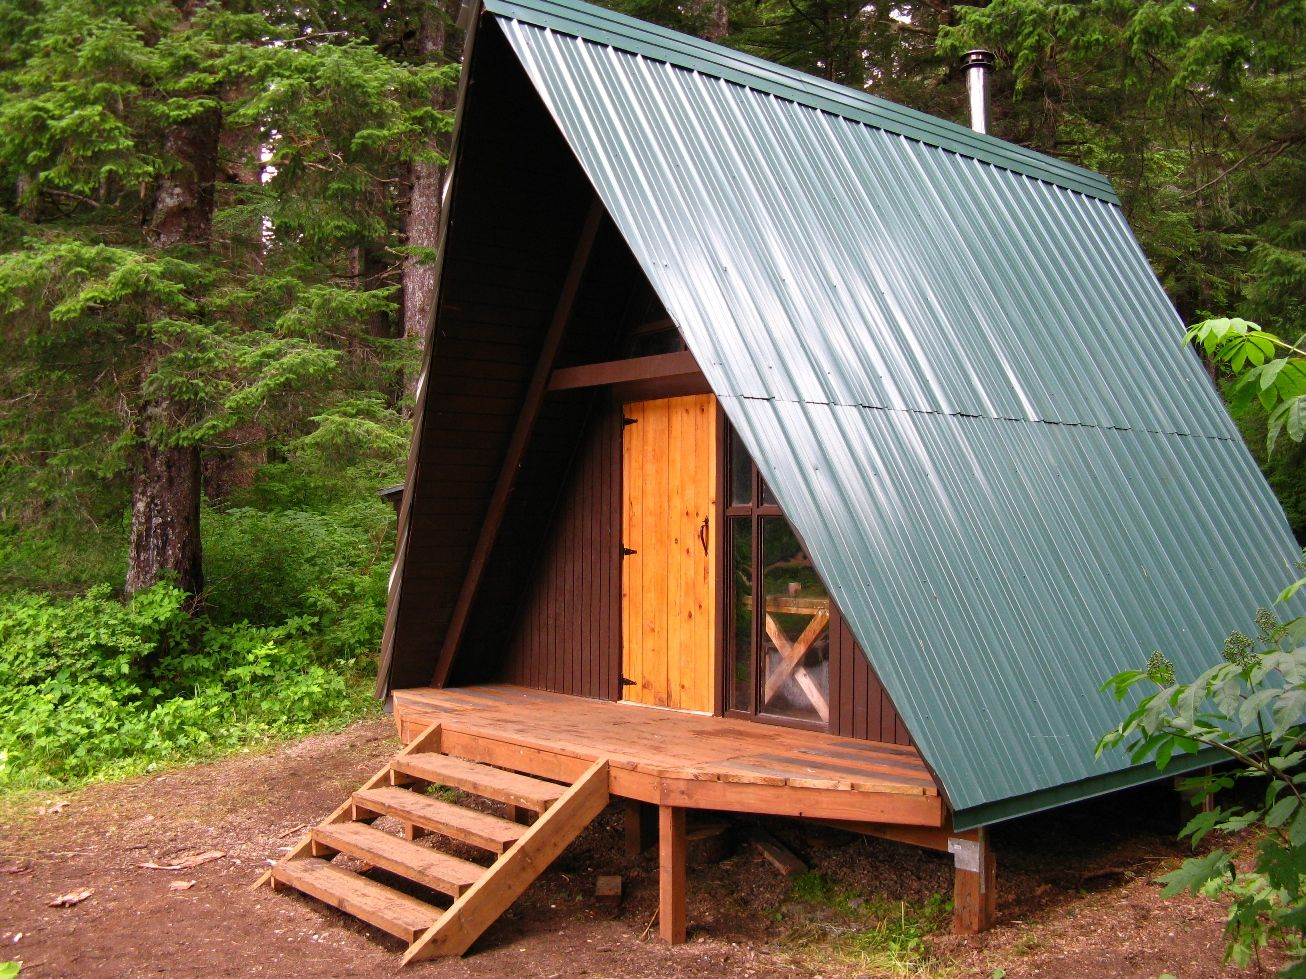 Small cabin option land ideas pinterest cabin for Hunting cabins kits